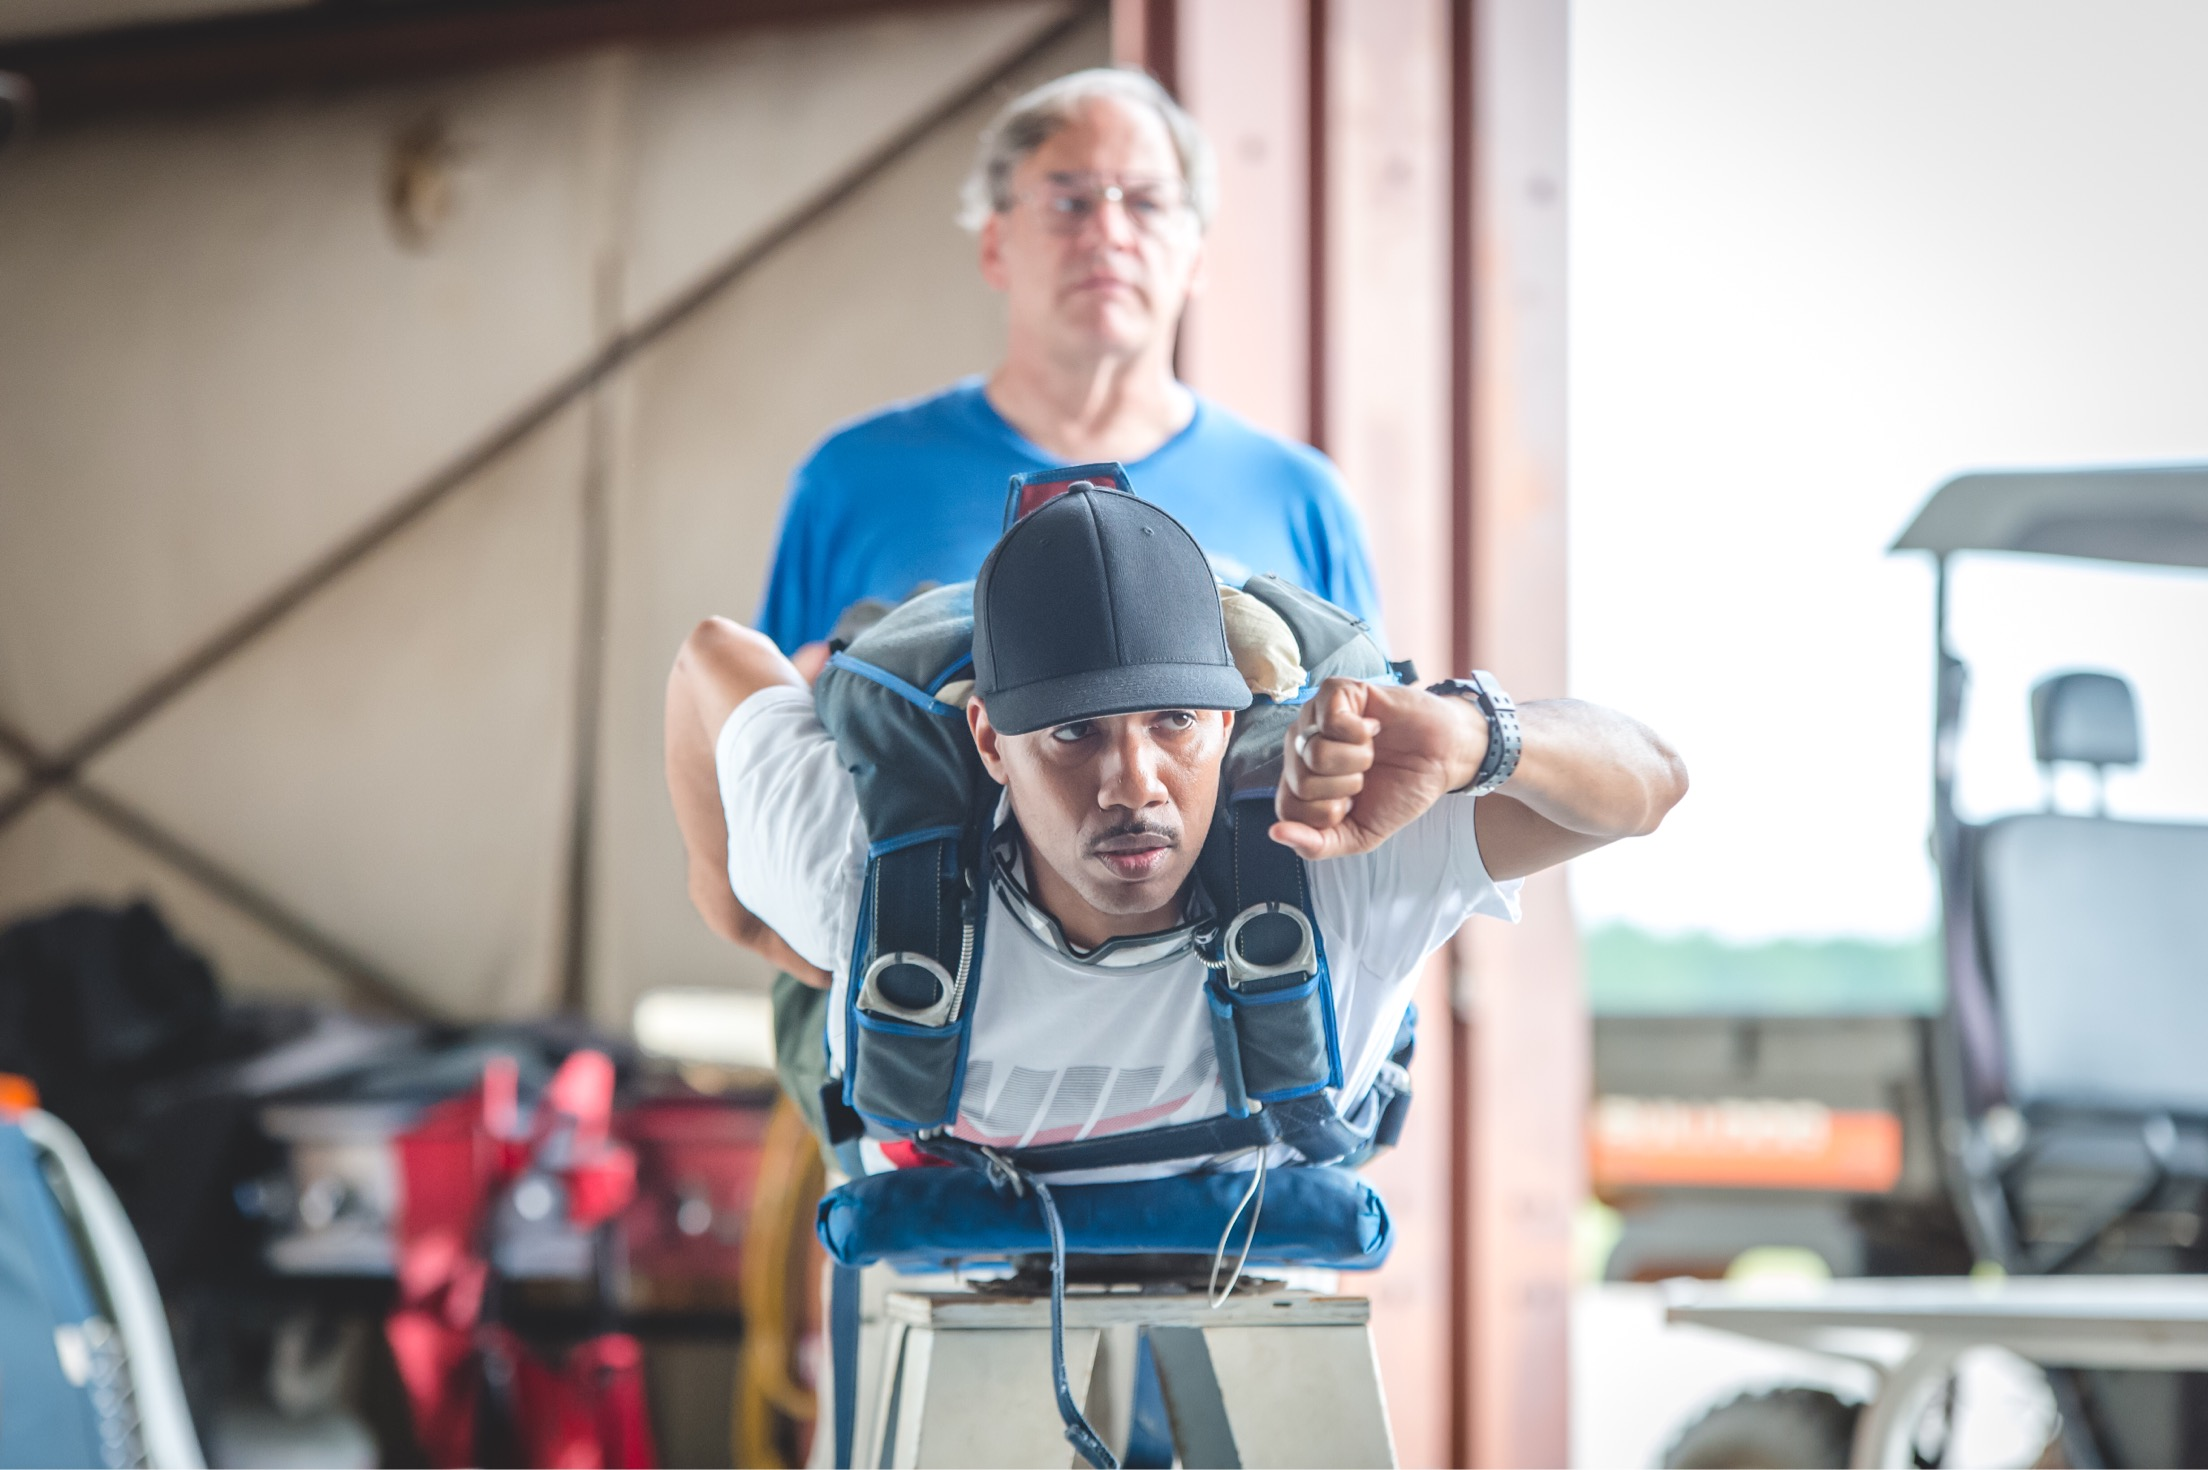 Learning how to skydive4.JPG